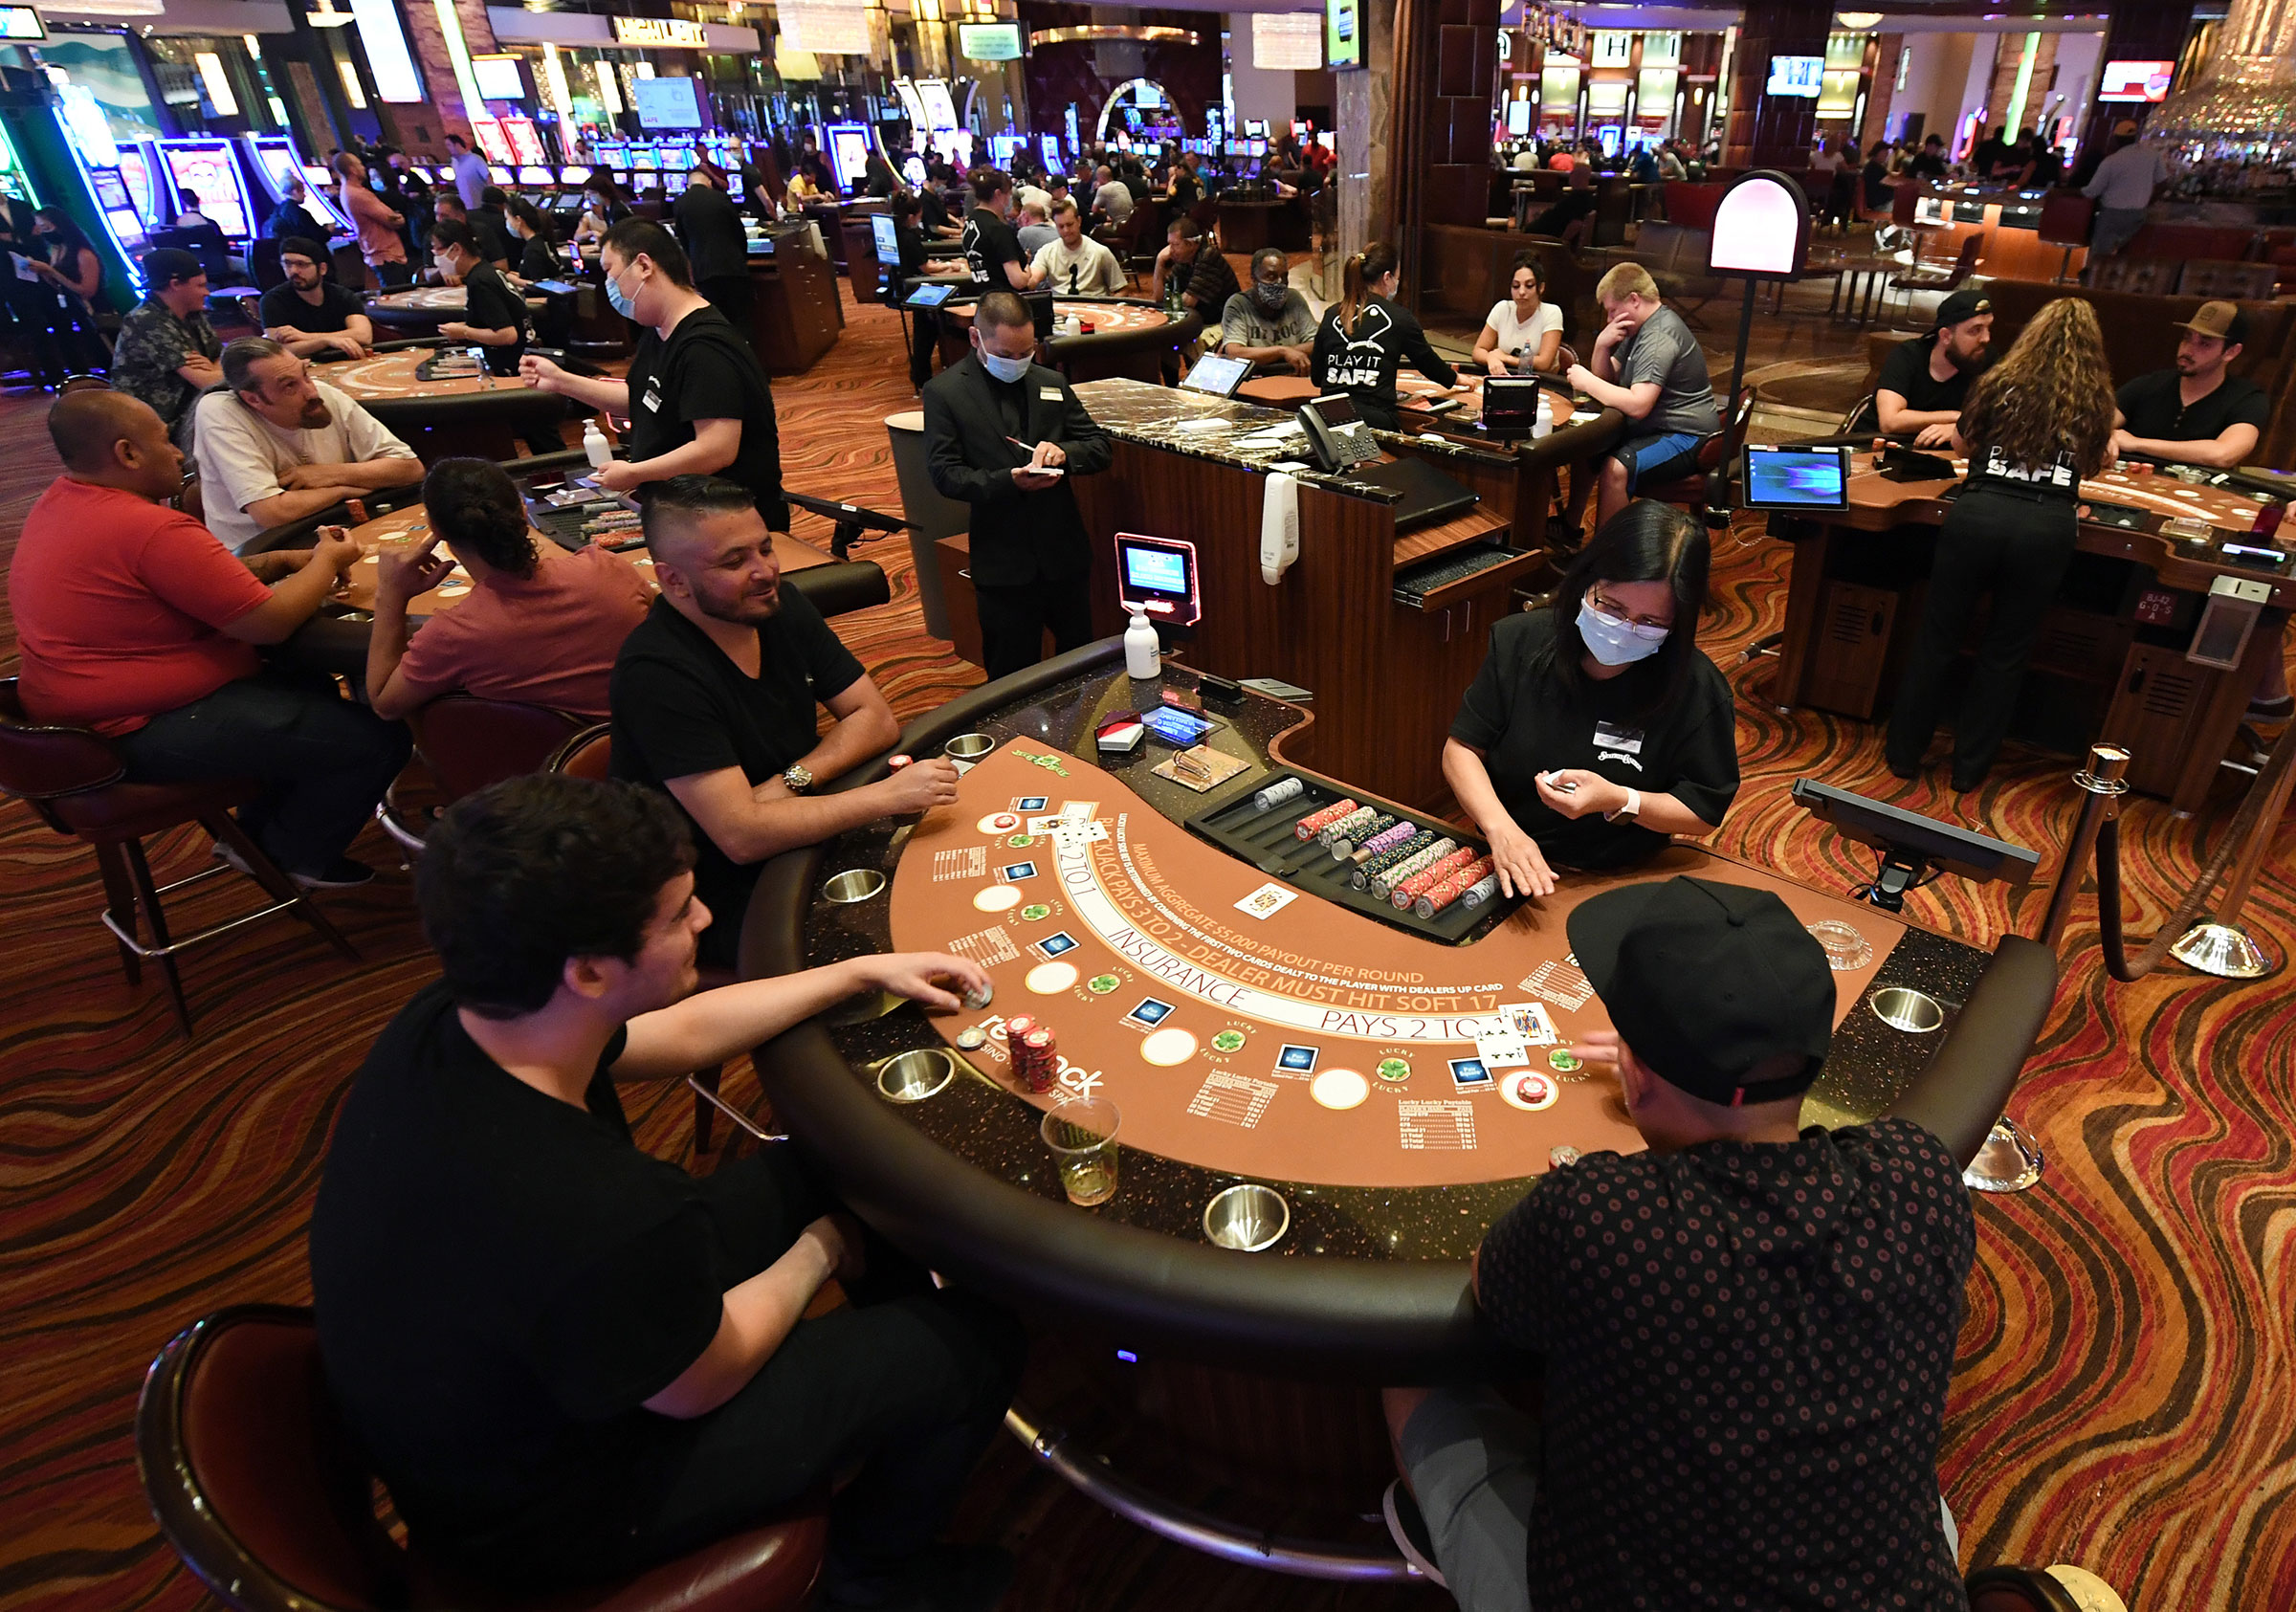 Guests play blackjack at tables with only three players allowed at a time at the Red Rock Resort after the property opened for the first time since being closed on March 17 because of the coronavirus pandemic on June 4, 2020 in Las Vegas, Nevada.